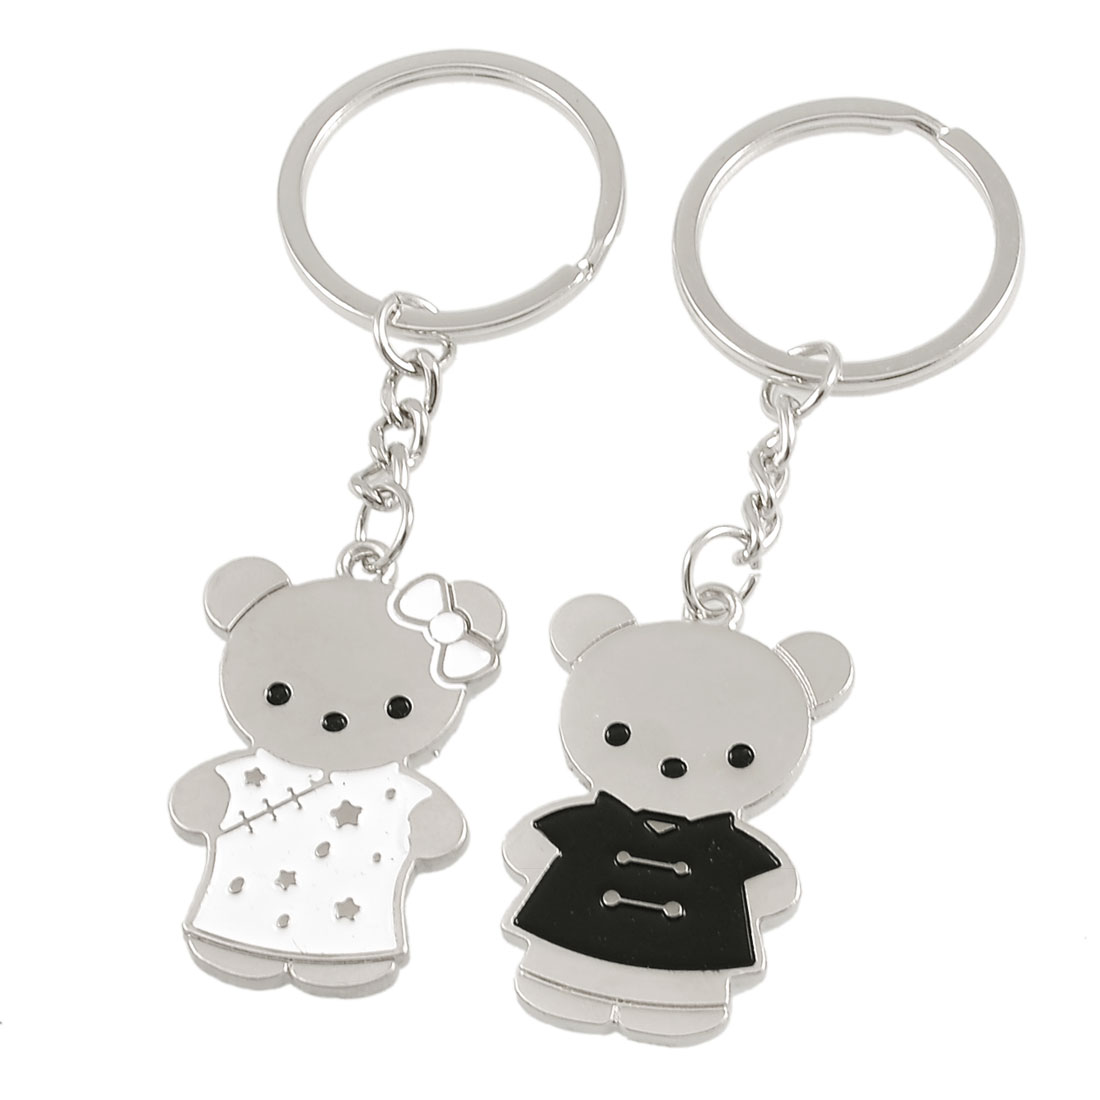 Metal Dressed Bear Shape Dangling Lovers Keychain Key Holder Silver Tone Pair